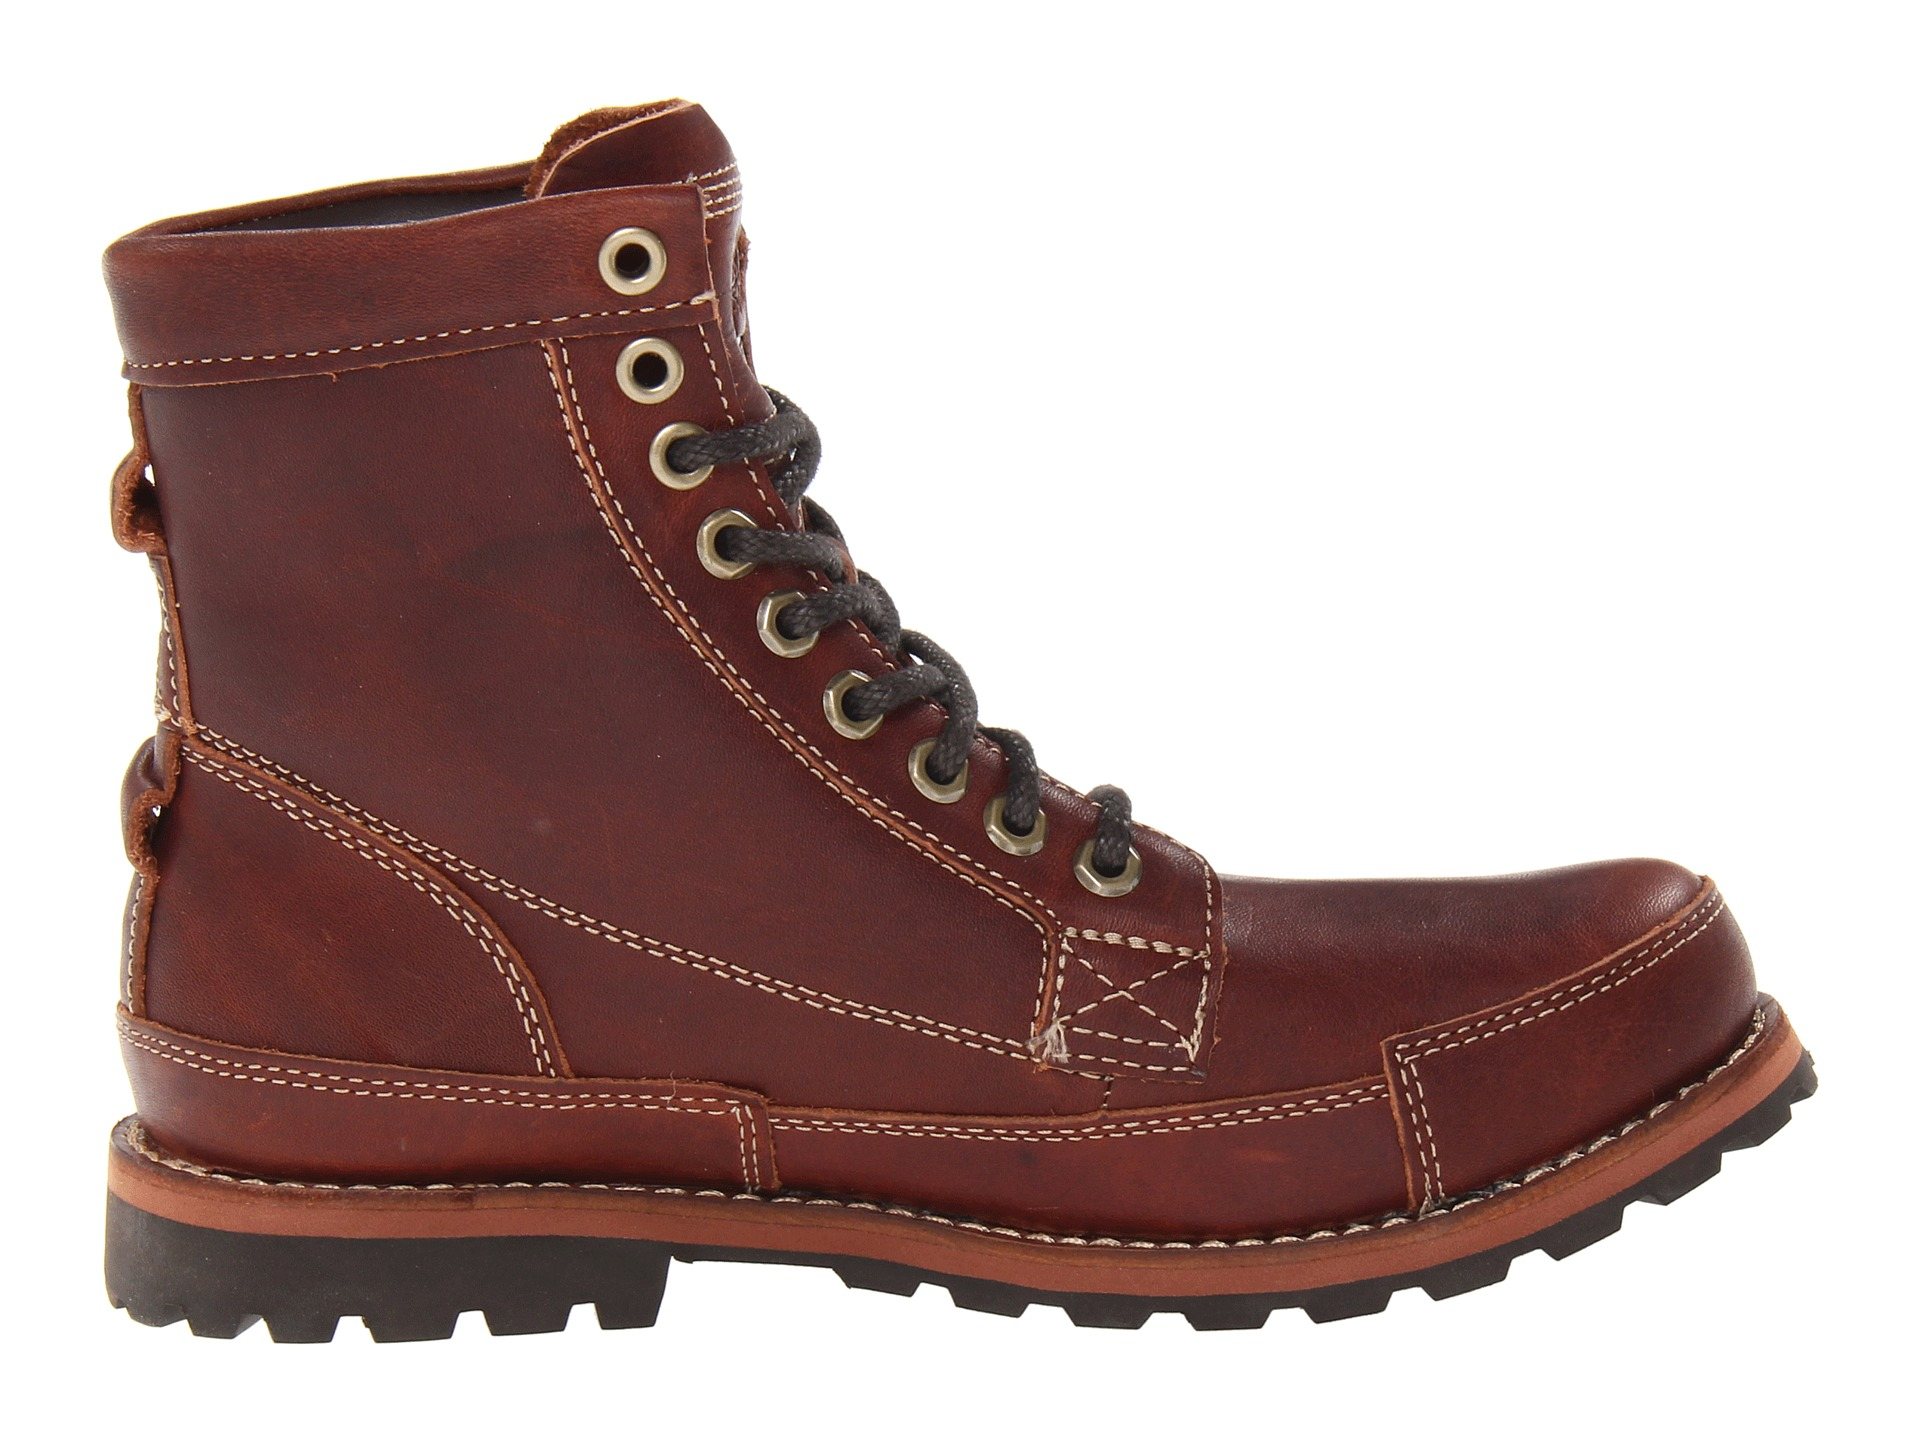 Timberland Earthkeepers Rugged Original Leather 6 Boot in ...